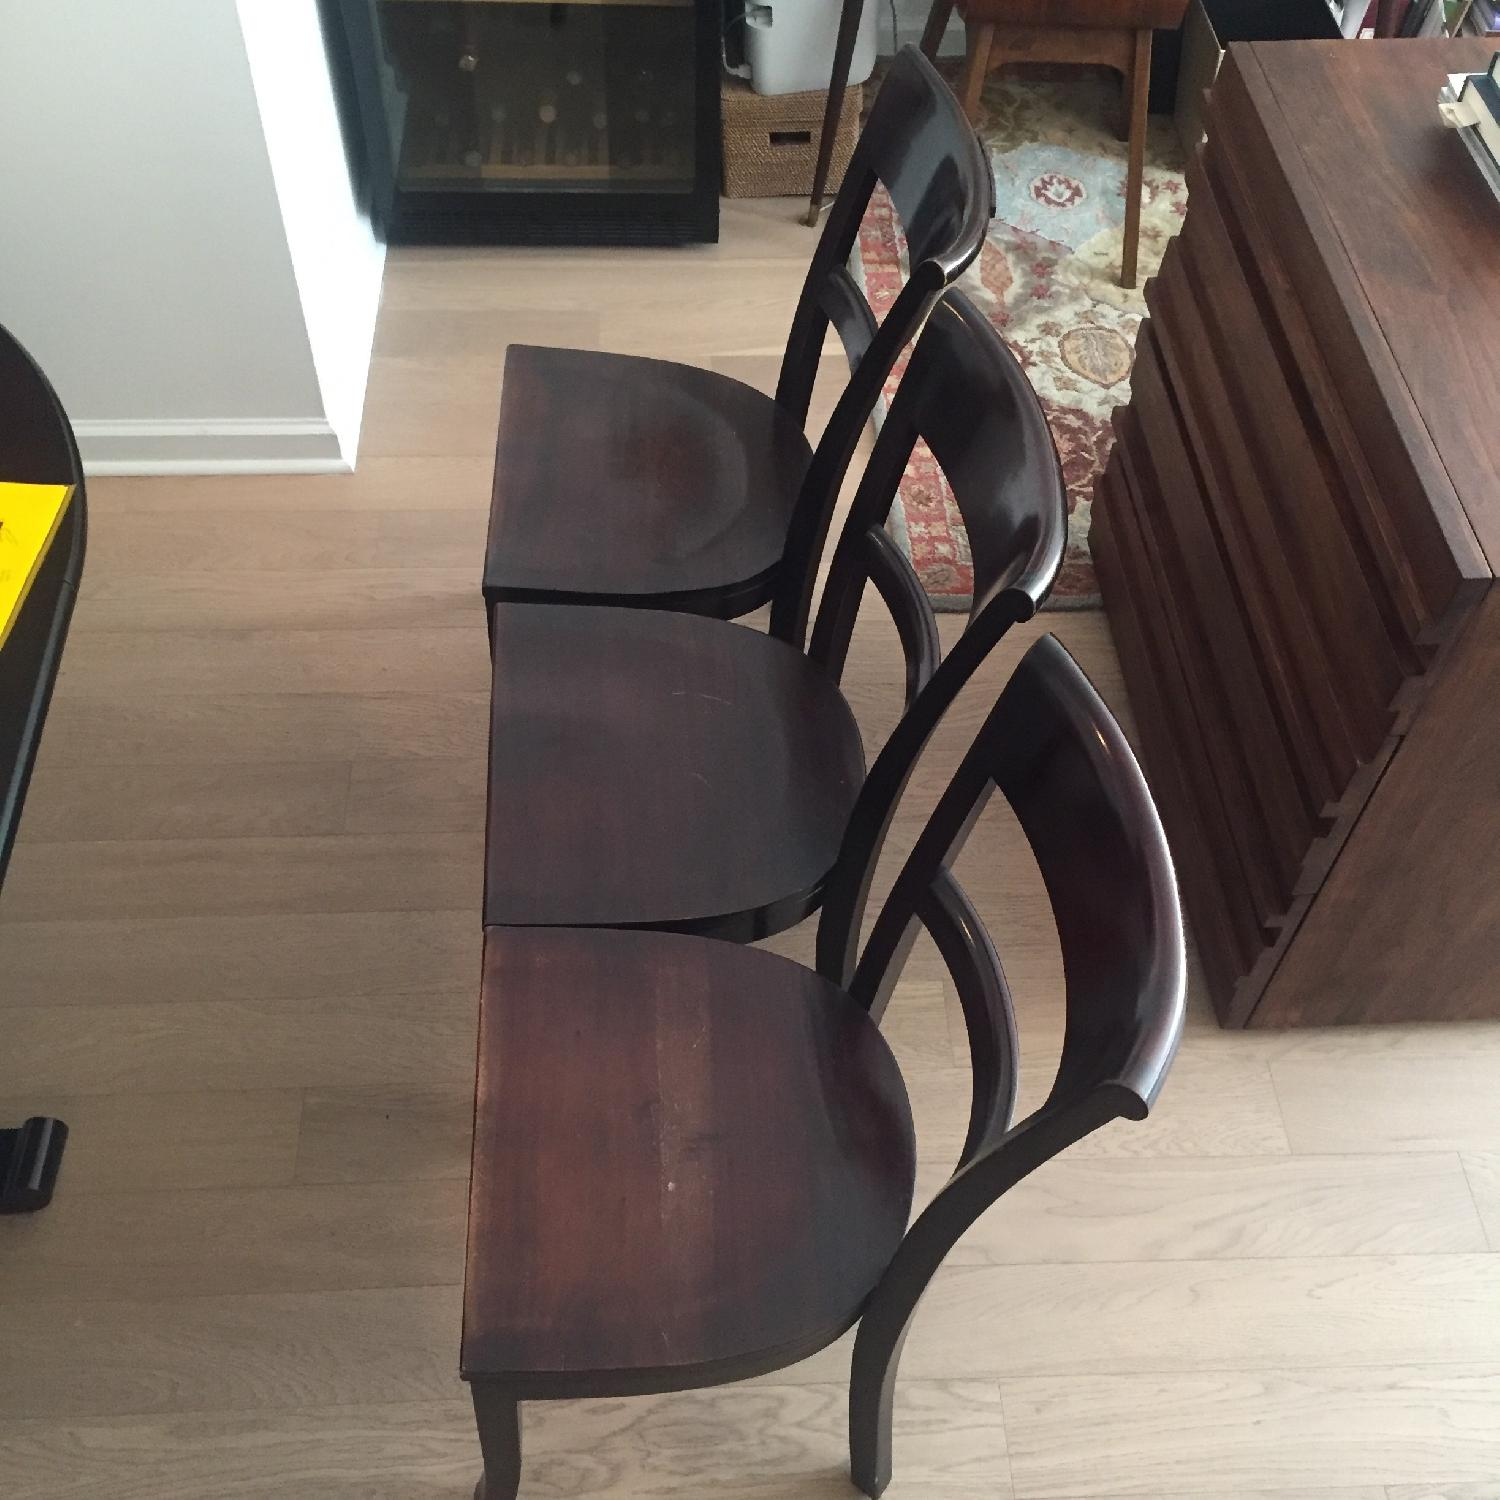 Crate & Barrel Dining Room Table w/ 6 Chairs - image-6